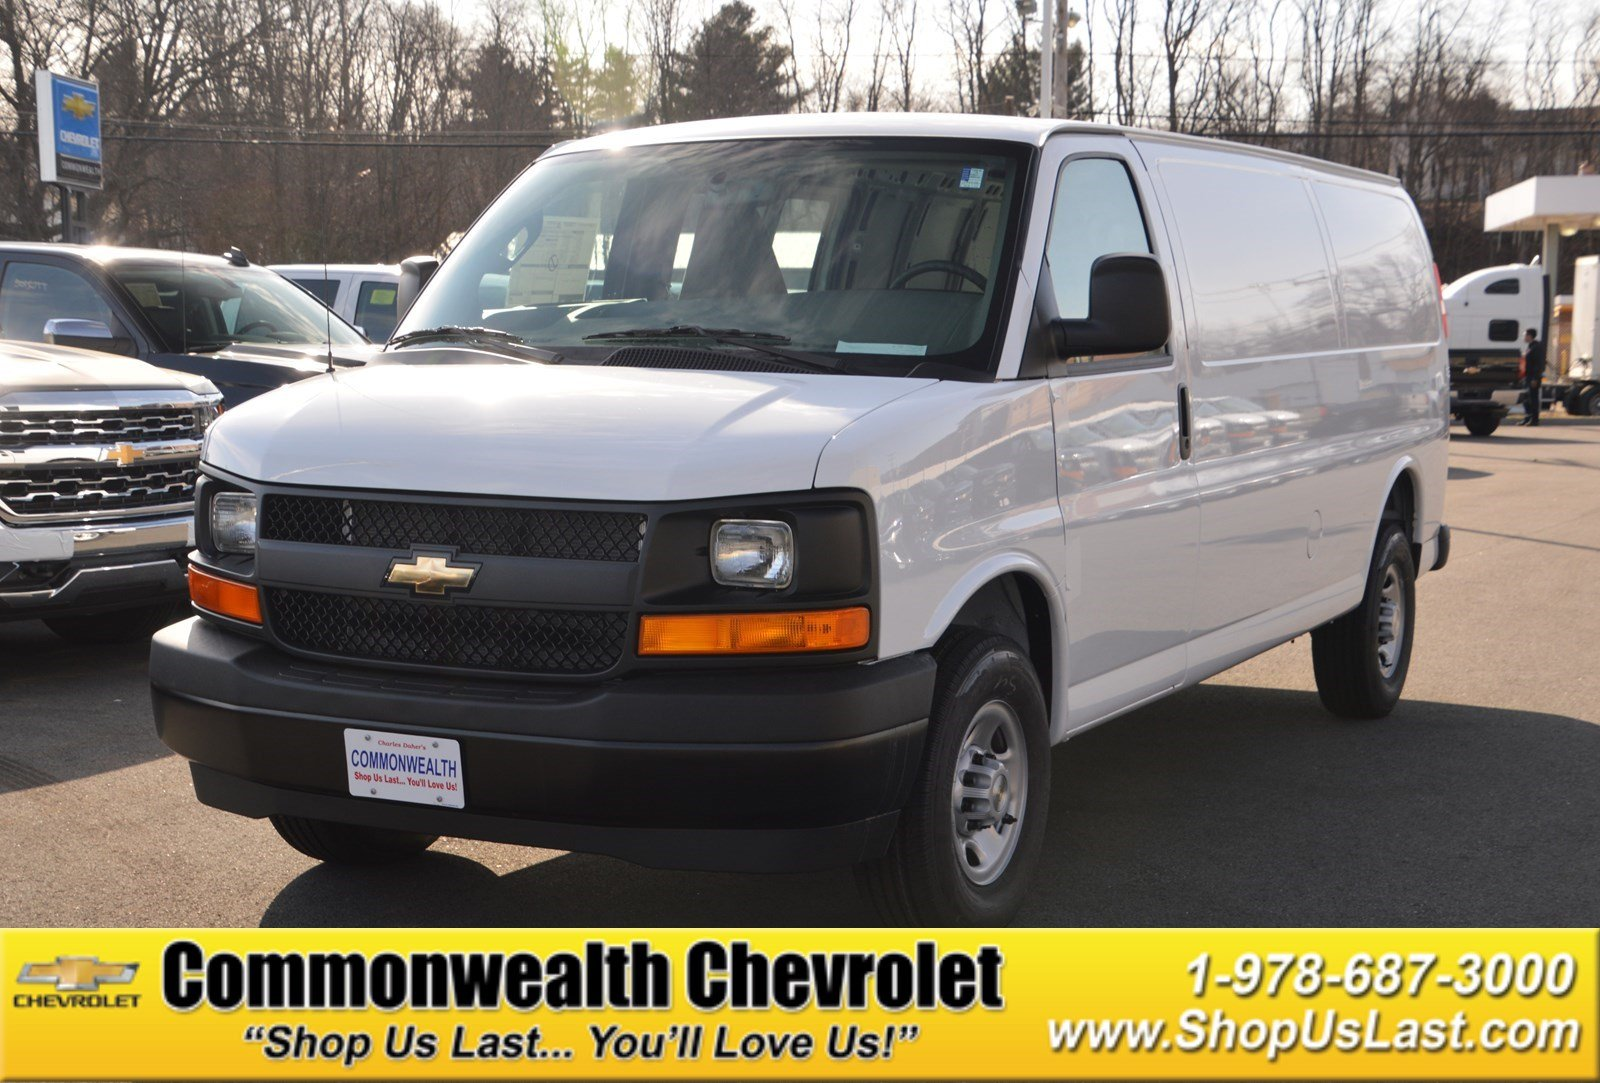 new 2017 chevrolet express cargo van full size cargo van in lawrence c5512 commonwealth chevrolet. Black Bedroom Furniture Sets. Home Design Ideas